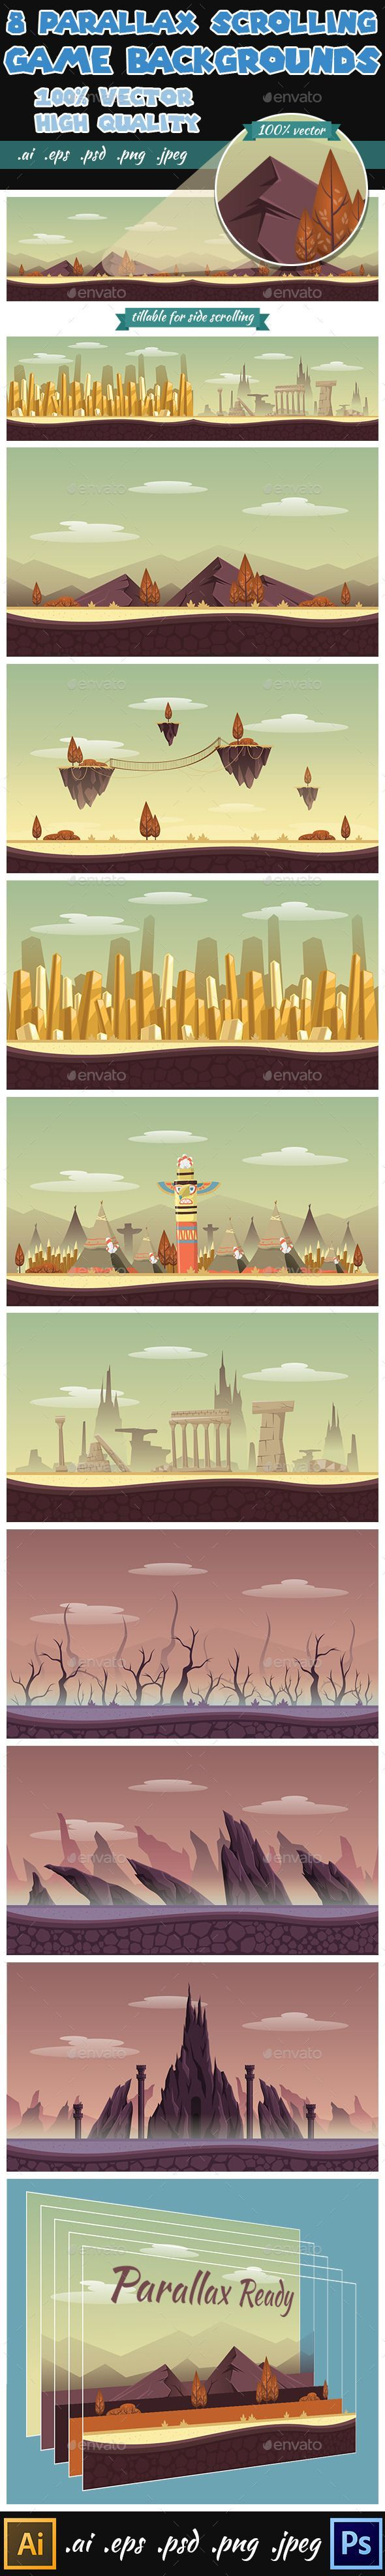 8 Game Backgrounds - Parallex Side Scrolling (Photoshop PSD, Transparent PNG, JPG Image, Vector EPS, AI Illustrator, CS, 2d, 2d game backgrounds, android, app background, asset, background, backgrounds, bg, flash background, flash bg, game, game art, game assets, game background, game design, game landscape, gaming, landscape, side scroll, side-scroll, sidescroll, sidescroller, sidescrolling, tile, Tile Set, tileable, tileset, ui, vector, video game):